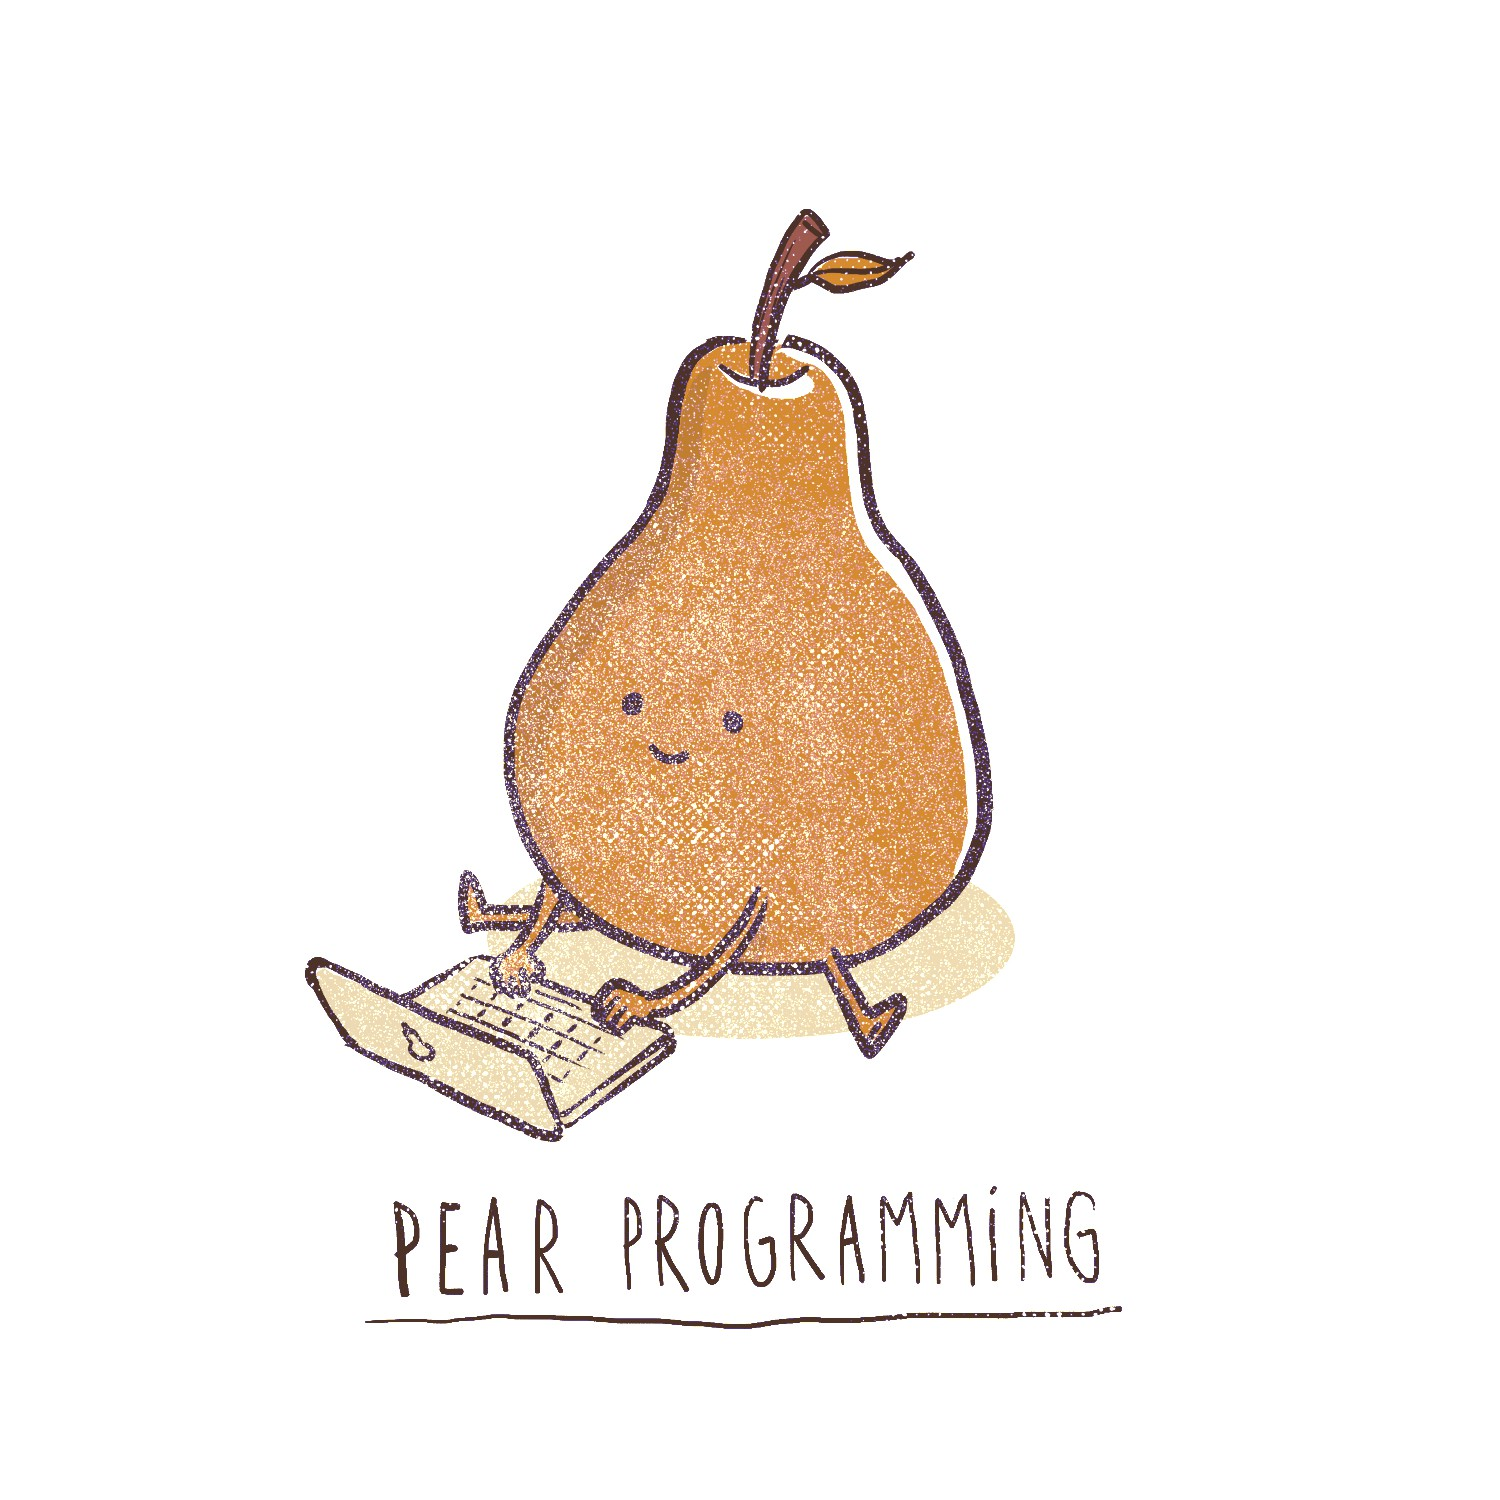 Cartoony, pun-based t-shirt for computer programmers